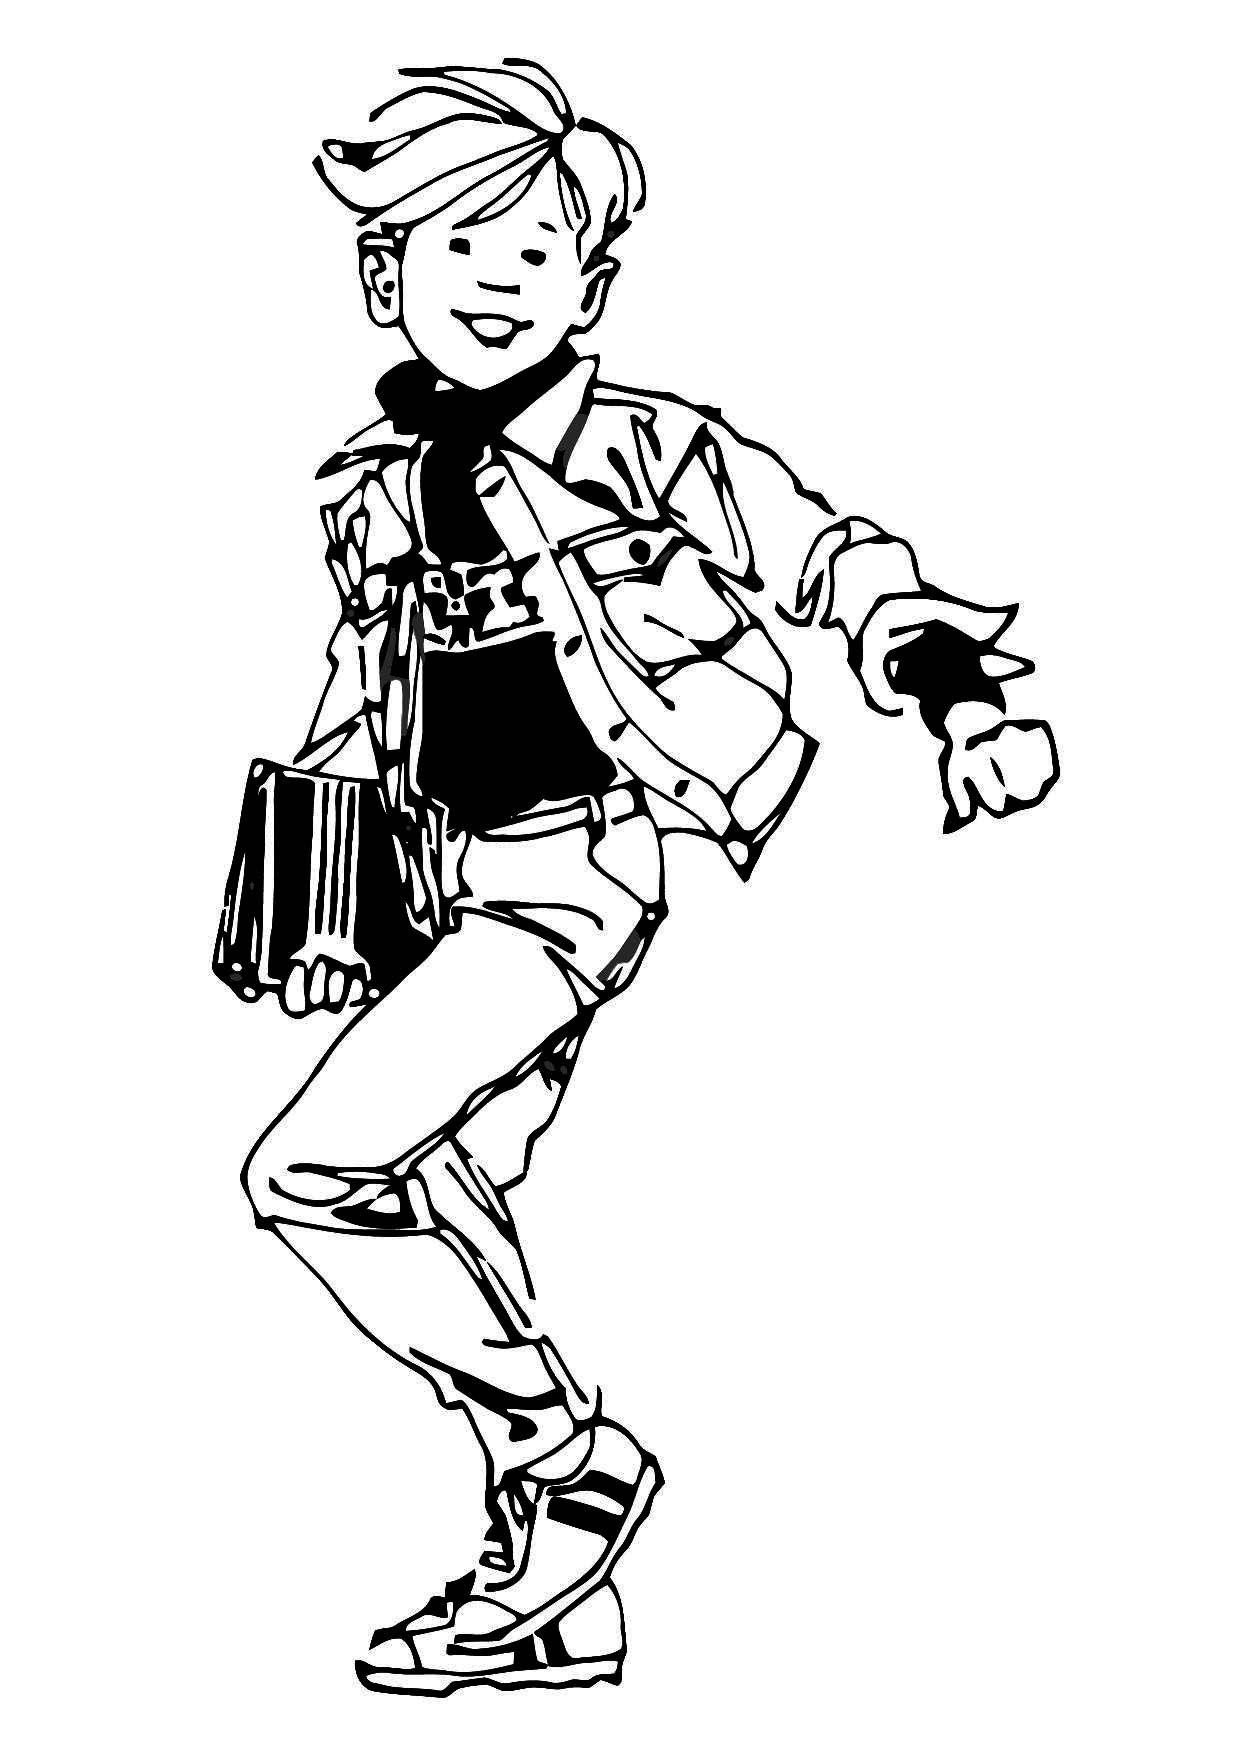 Coloring page student - img 11436.